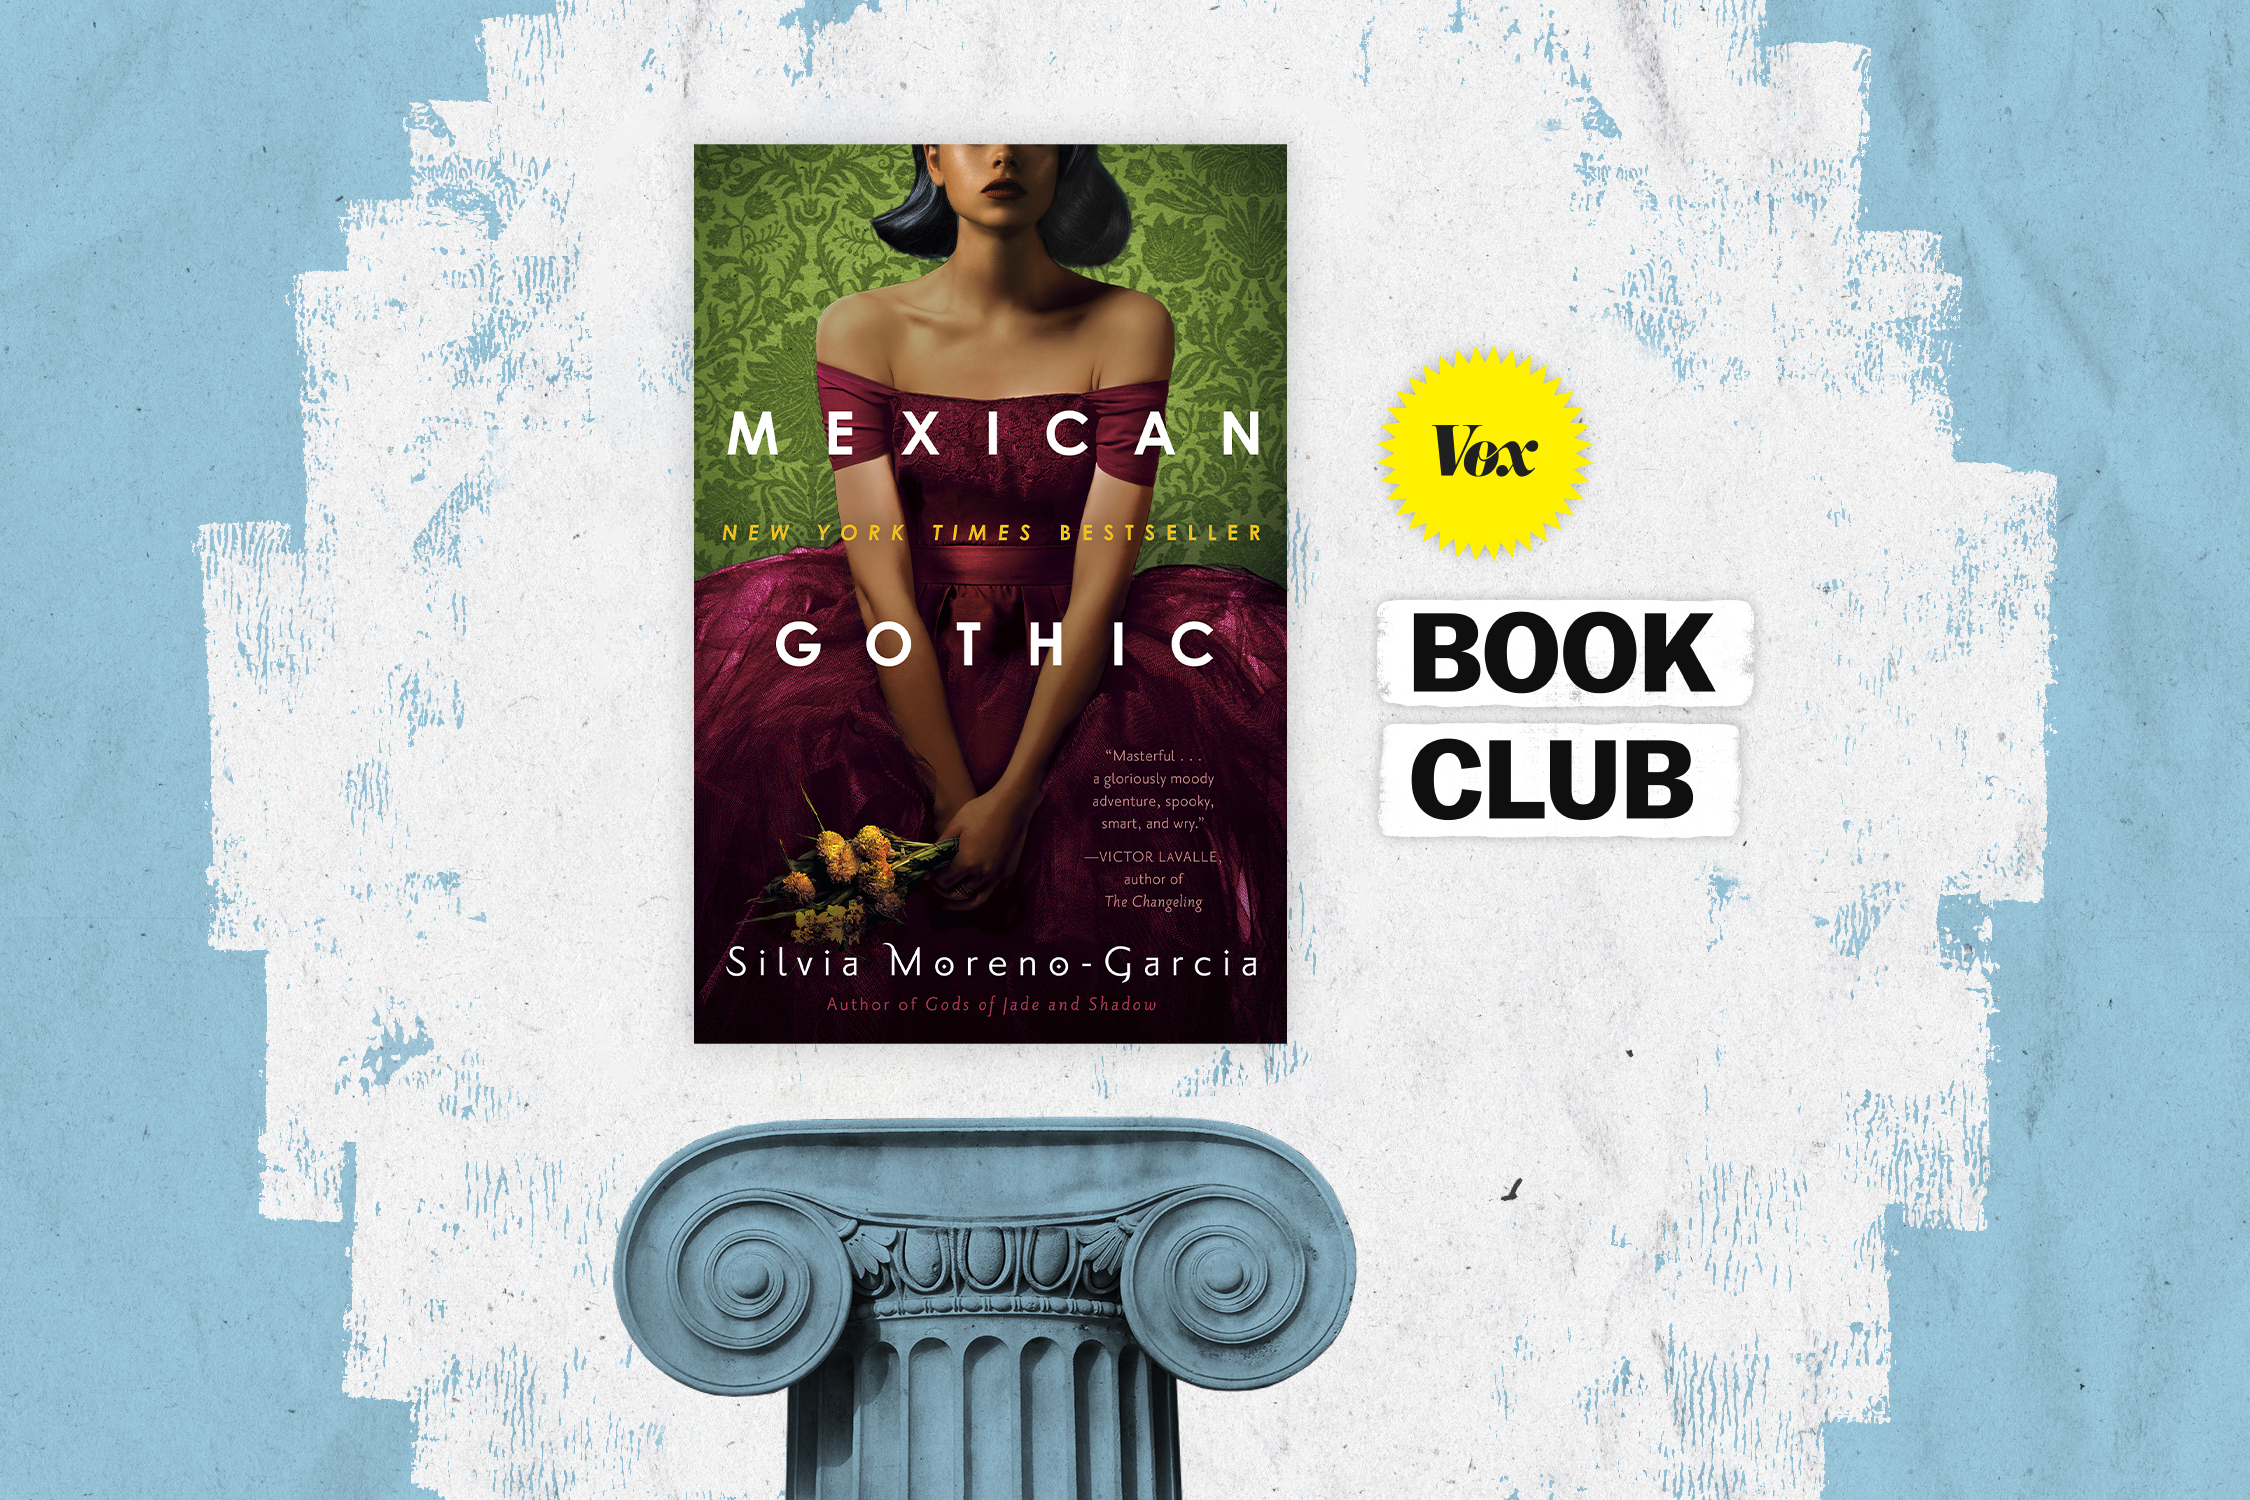 The Vox Book Club reads Mexican Gothic by Silvia Moreno-Garcia